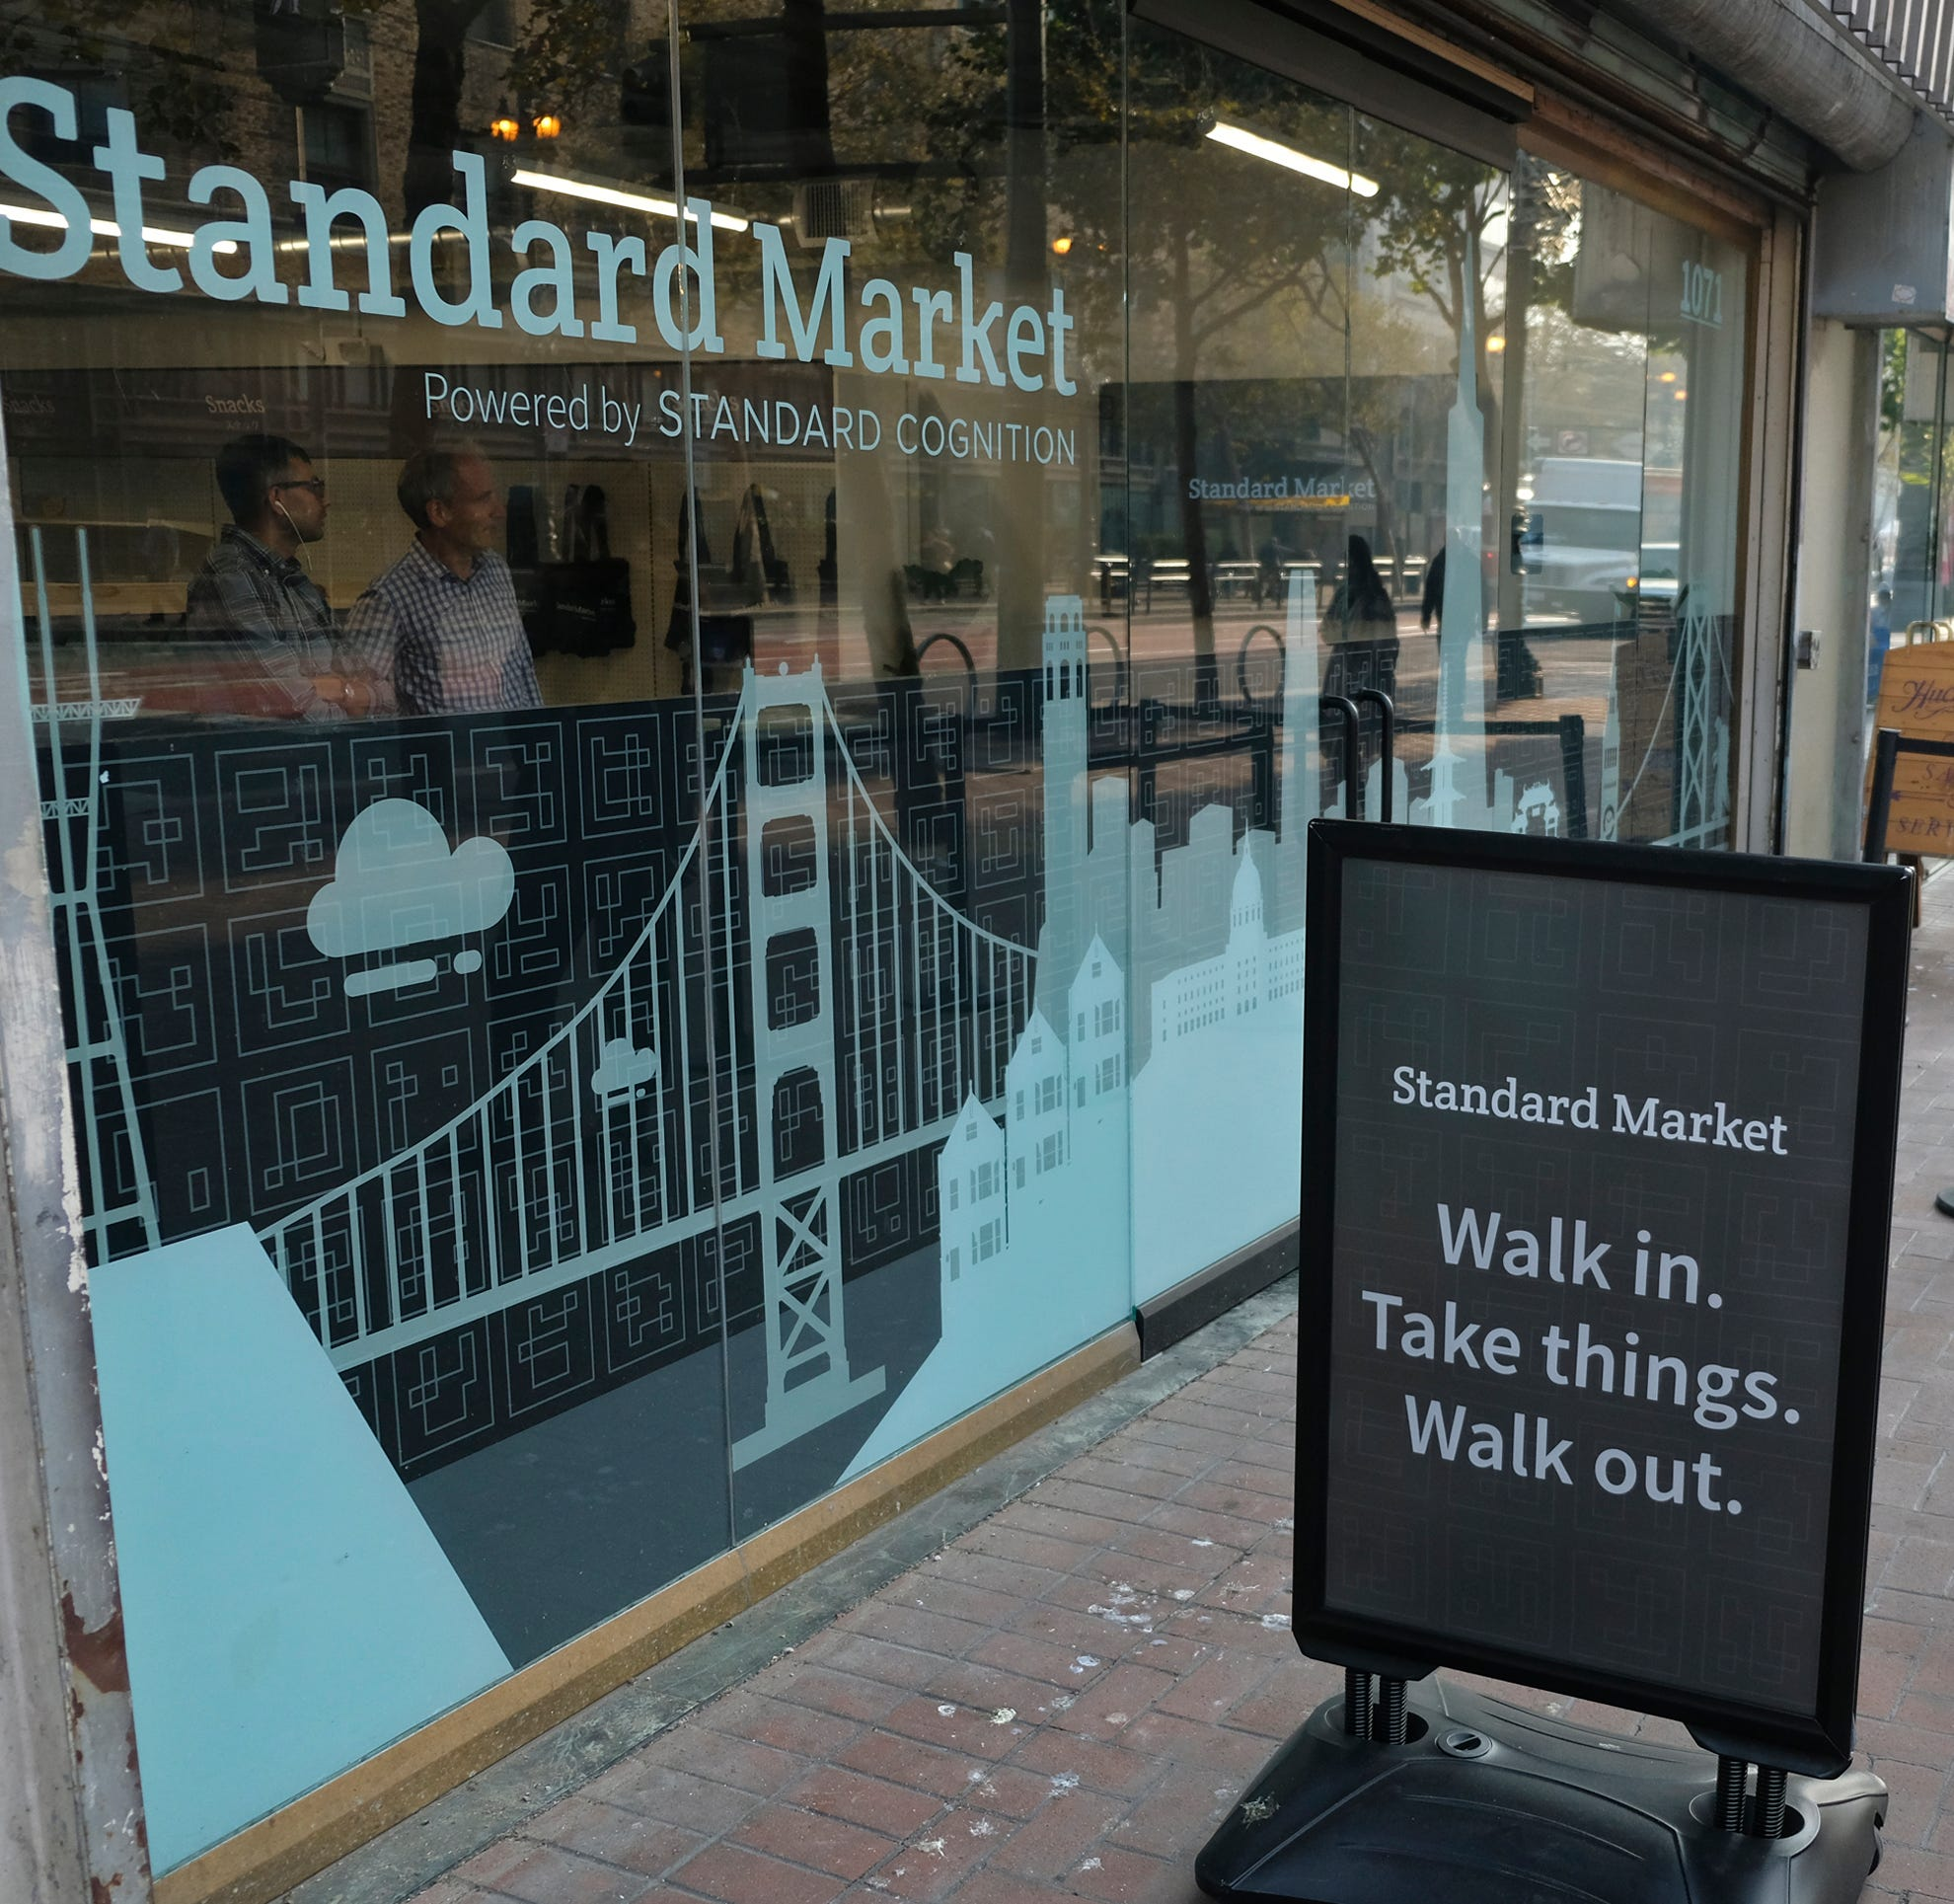 Checkout lines disappear as stores embrace technology